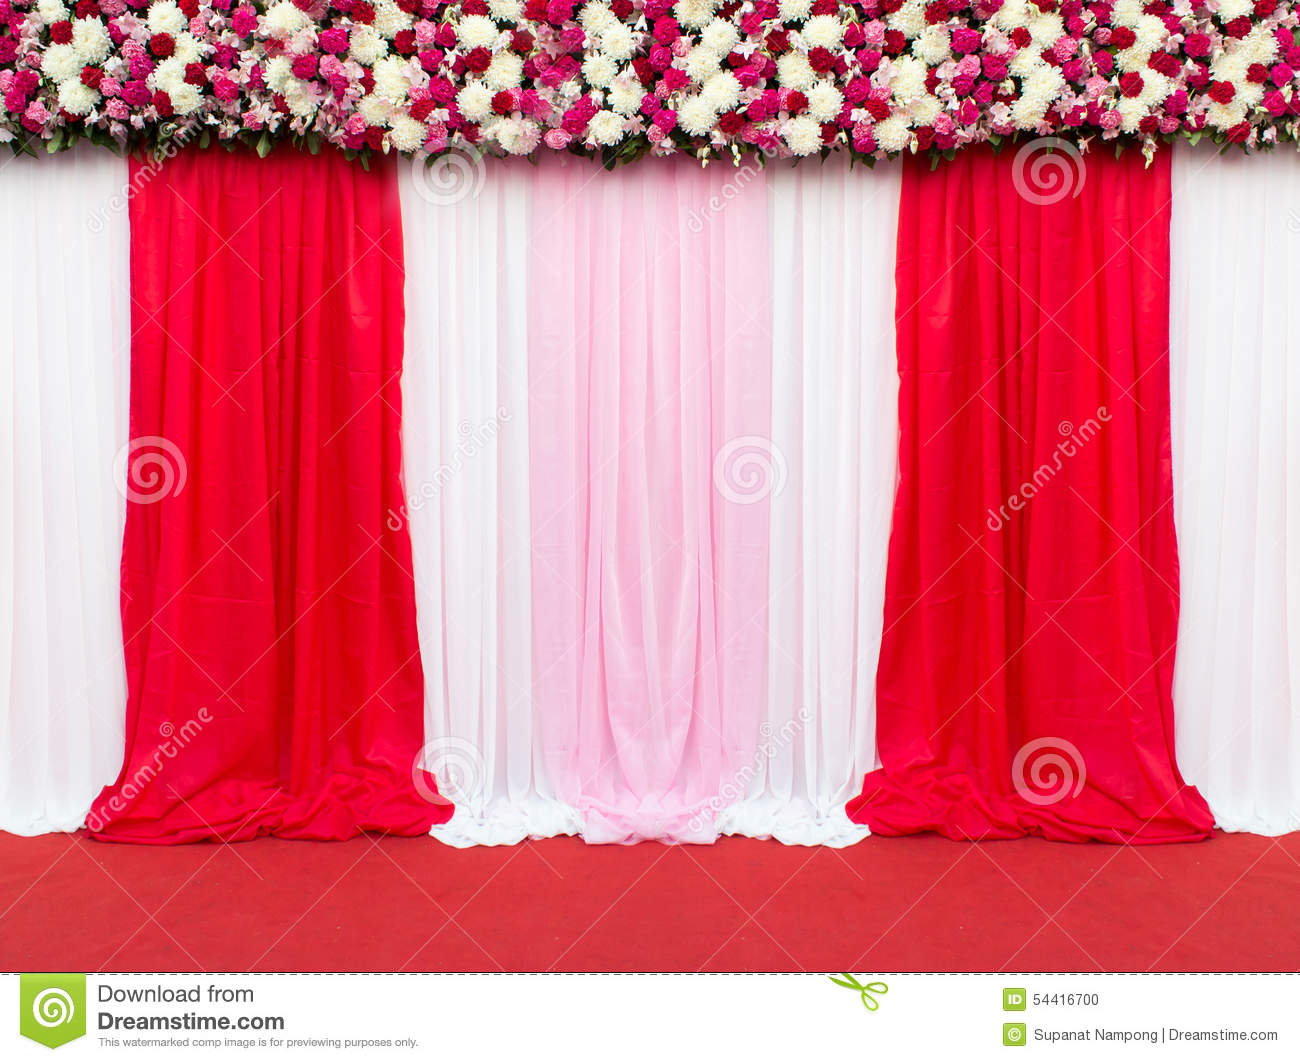 Wedding stage decoration stock images 976 photos for Background decoration images